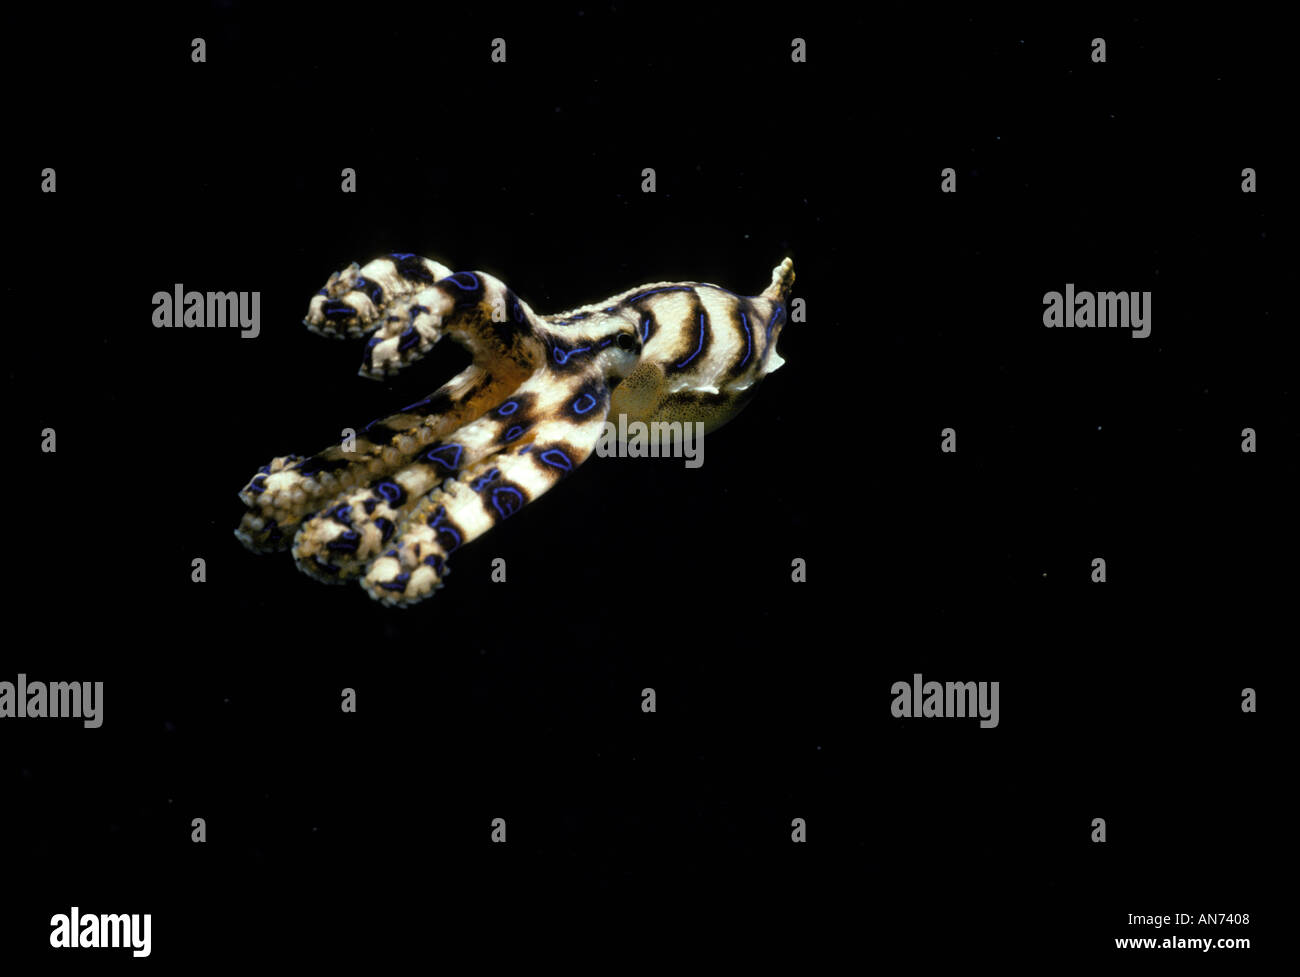 Poisonous Blue Ringed Octopus jets away - Stock Image